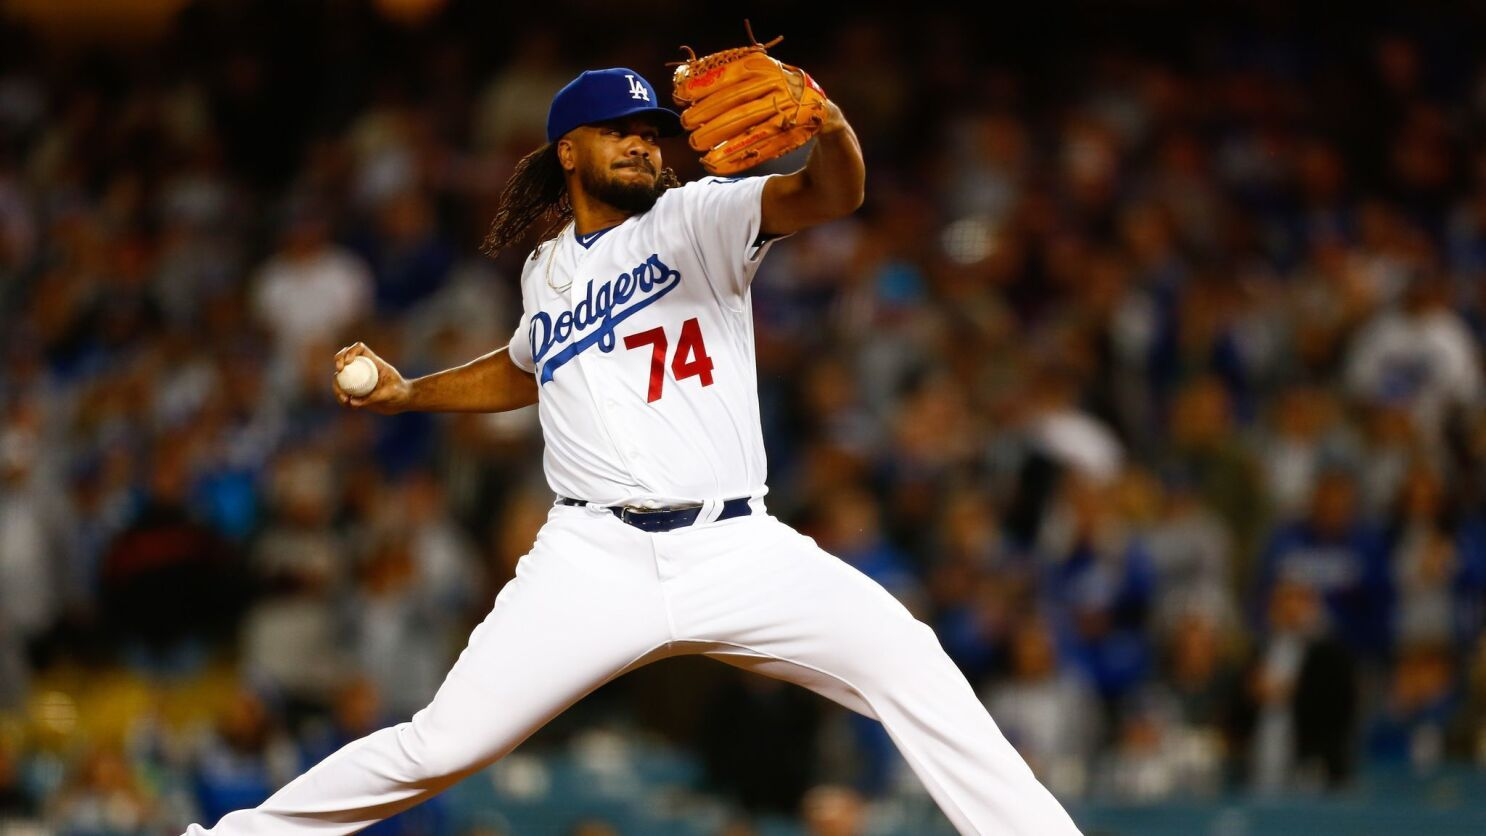 Kenley Jansen's lack of candor about injury bothers Dodgers manager Dave Roberts - Los Angeles Times